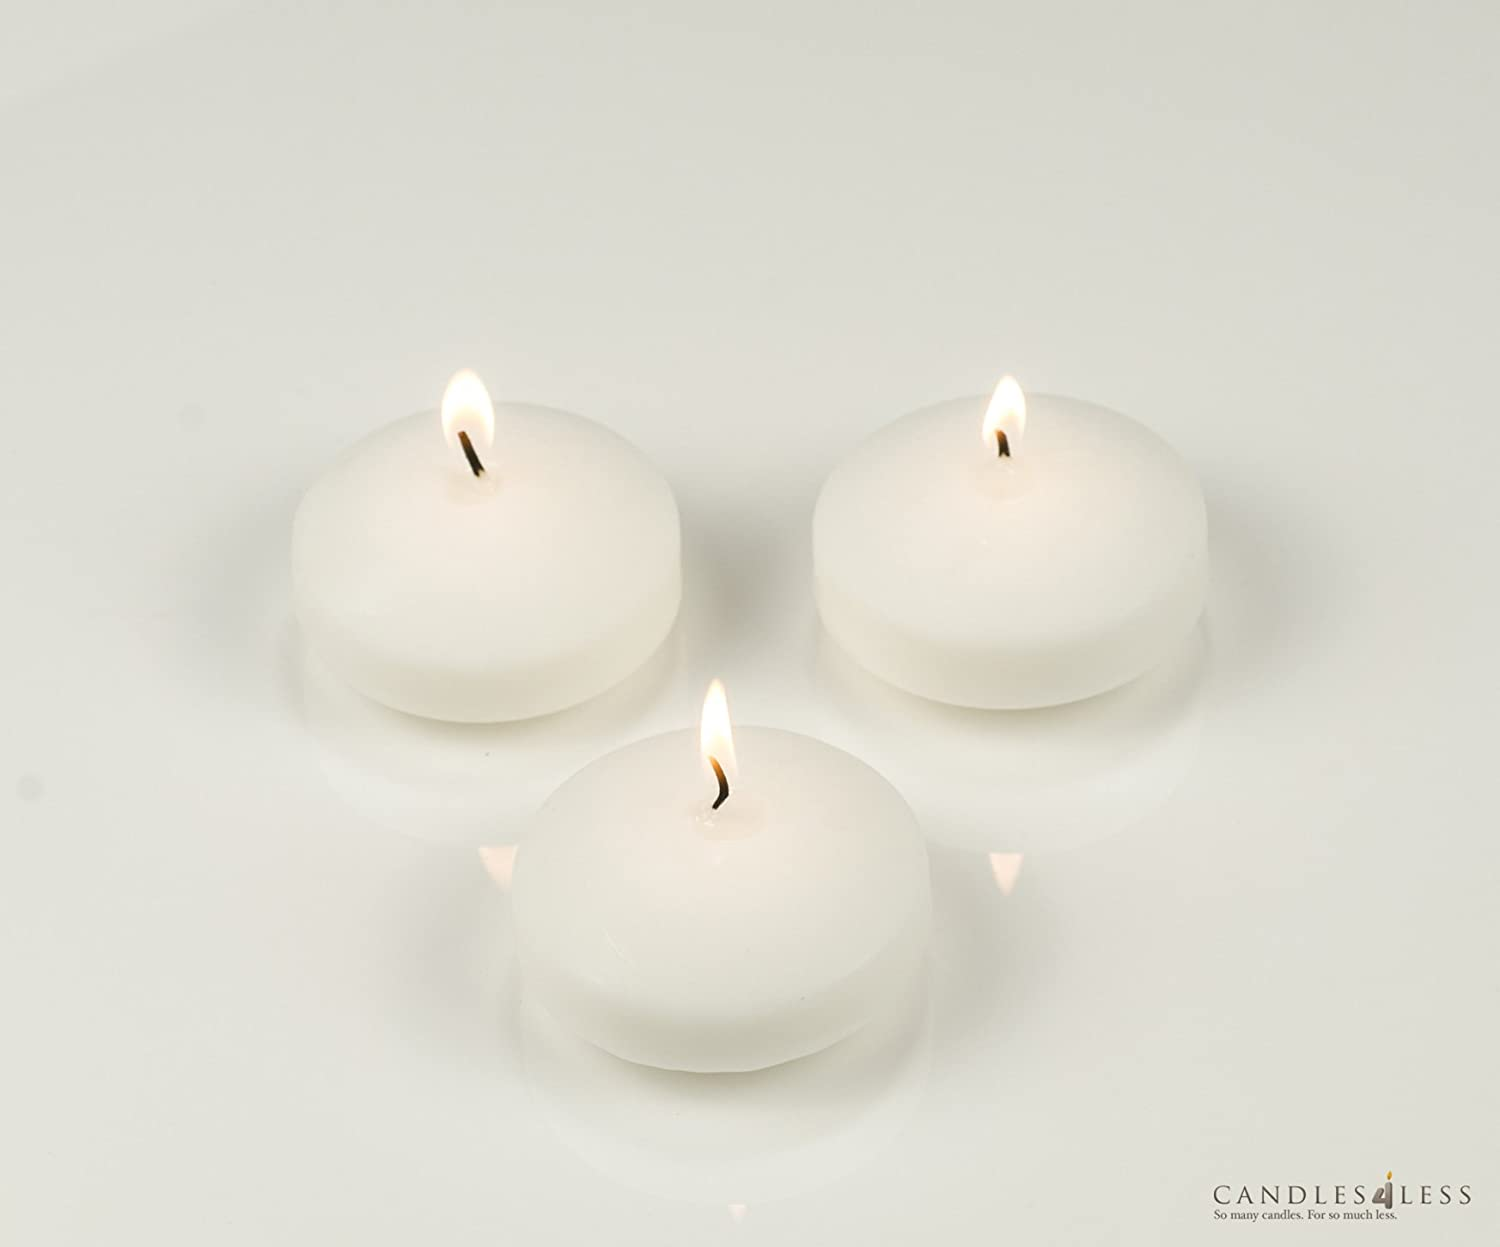 3 Inch Floating Candles Set of 12 White Unscented